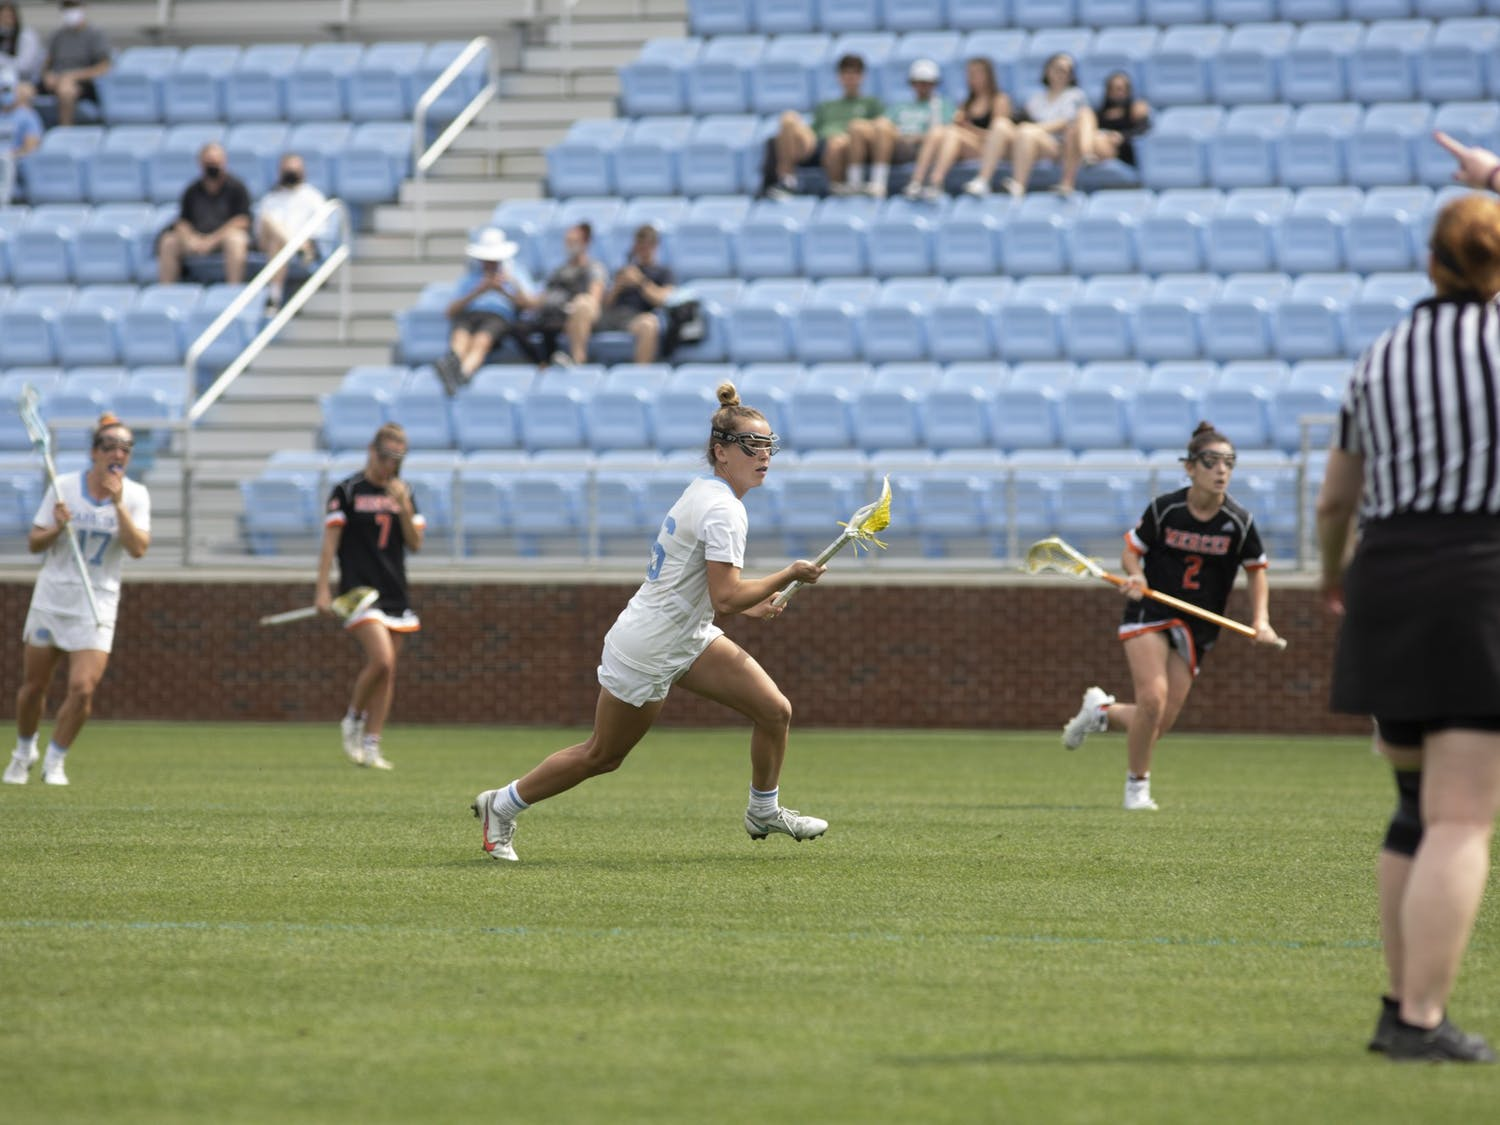 Graduate defender Catie Woodruff (16) looks for an opportunity to pass the ball in a game against Mercer at Dorrance Field on March 27, 2021. UNC beat Mercer 18-5.